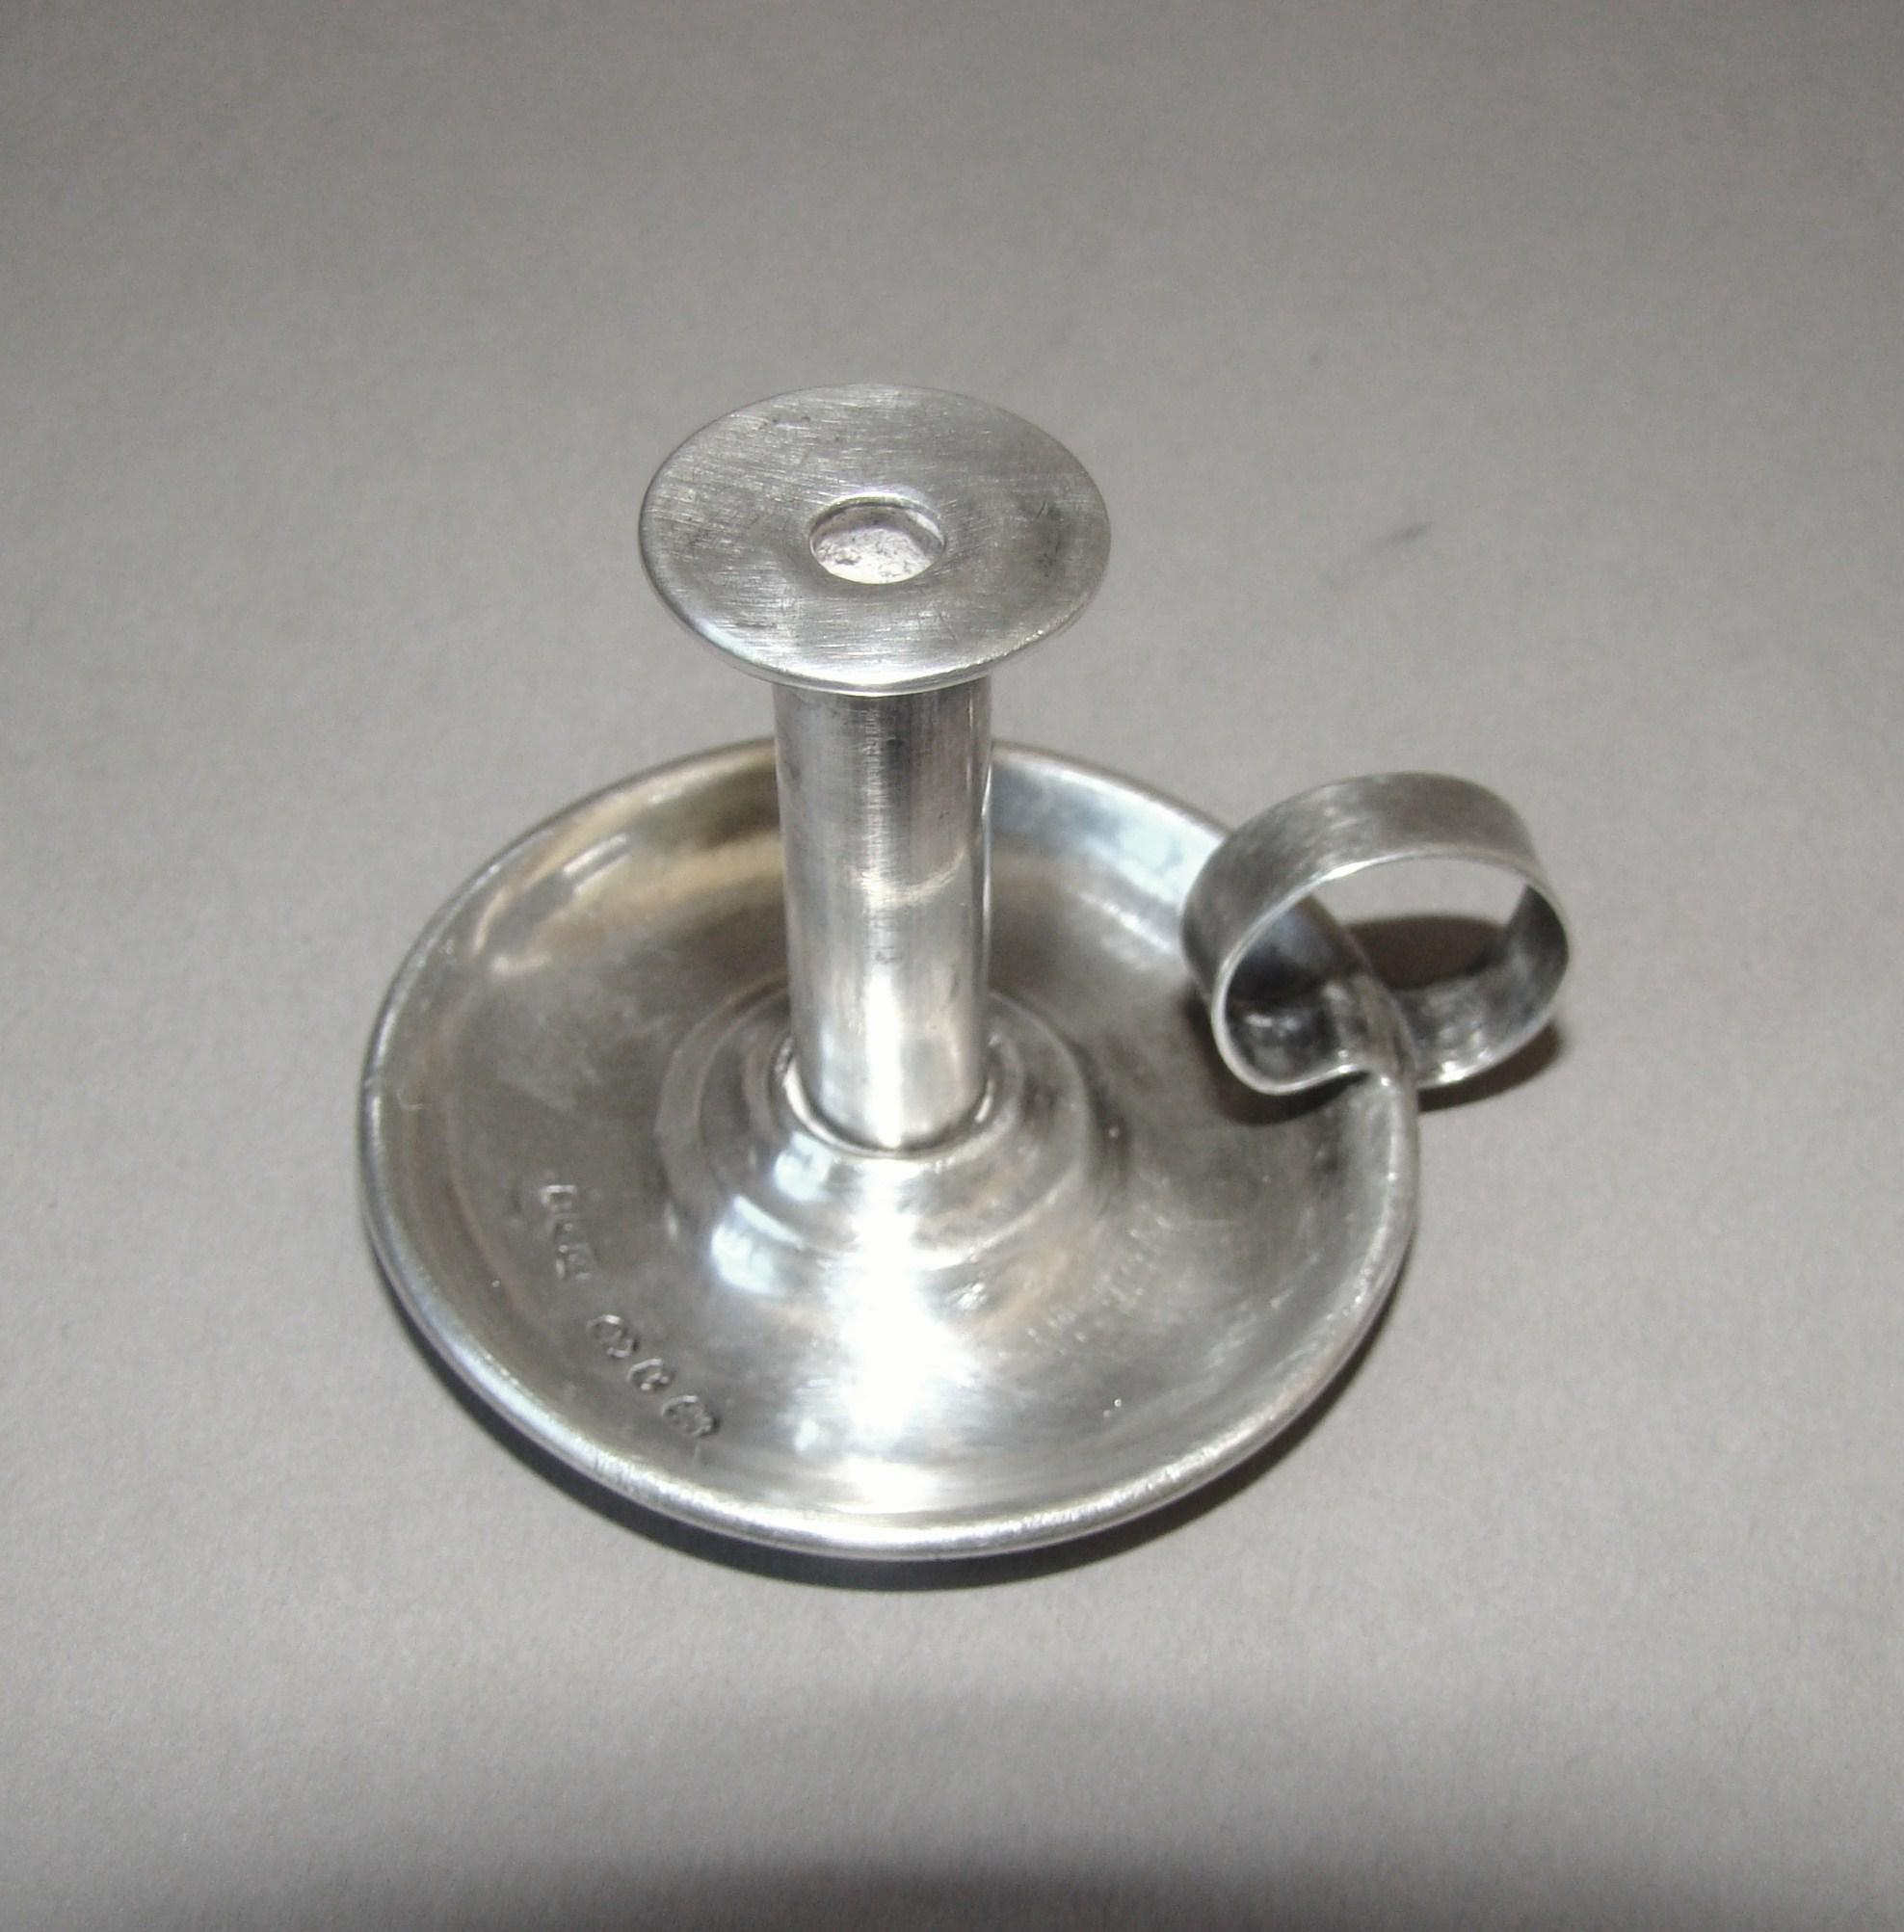 Antique English Sterling Silver Miniature Finger Candlestick Birmingham 1897